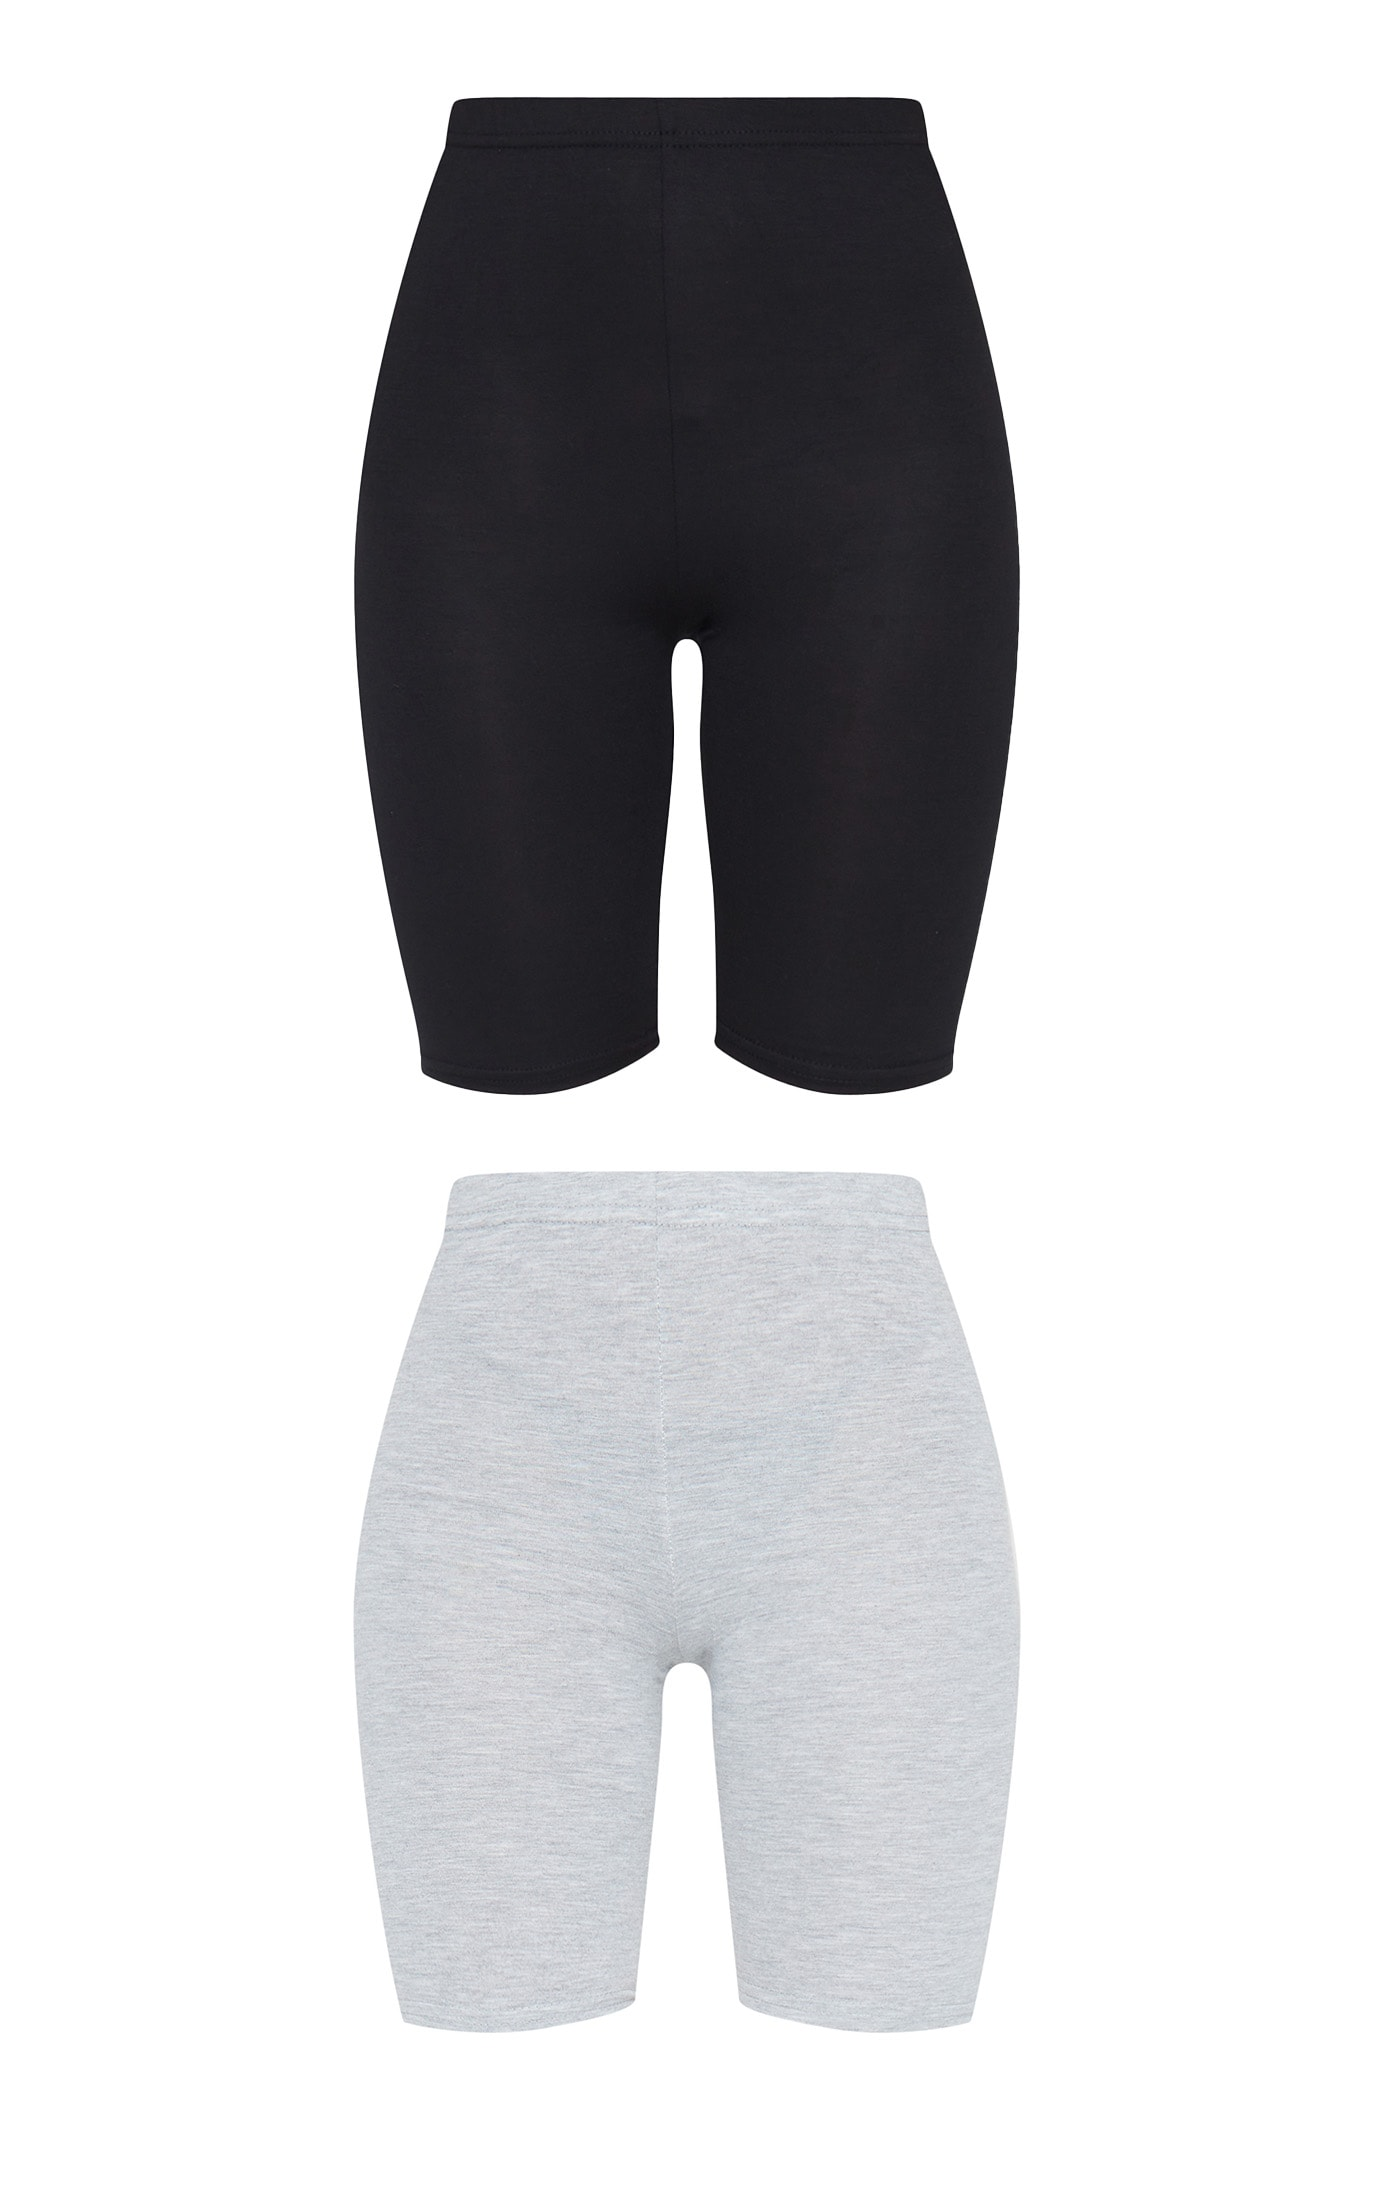 Black and Grey Basic Jersey 2 Pack Cycle Shorts 6